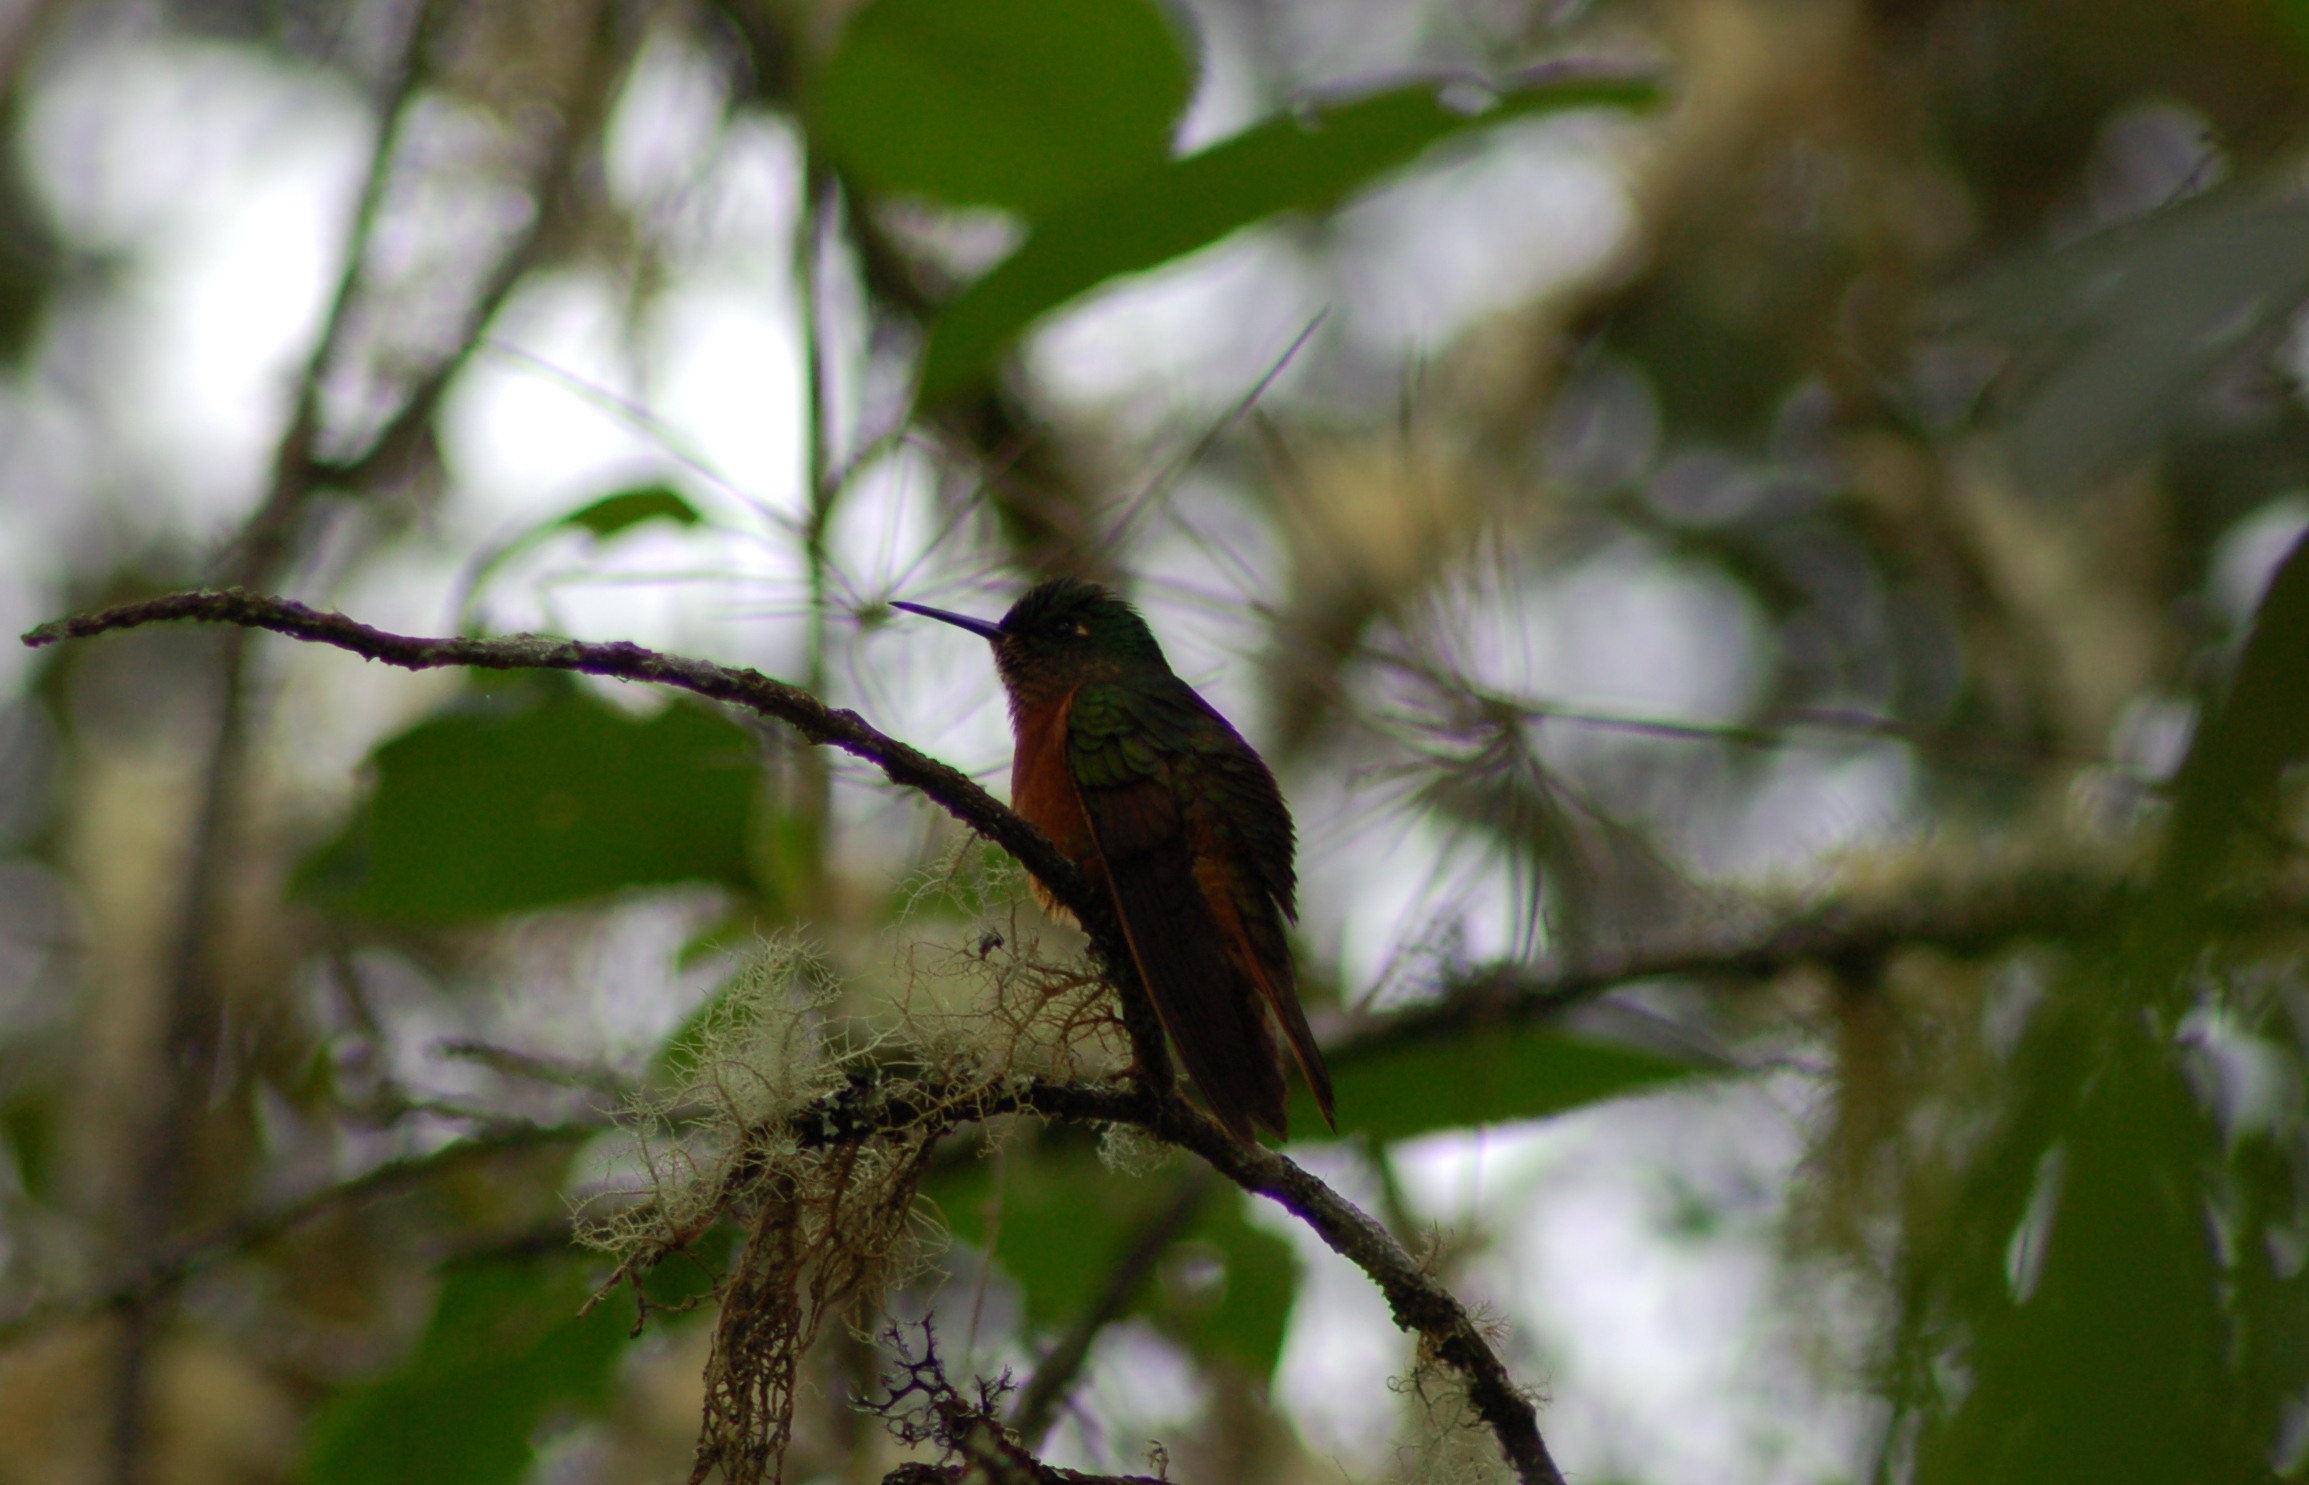 Scientific Name: Chestnut-breasted Coronet - Photo: Diego Garcia Olaechea